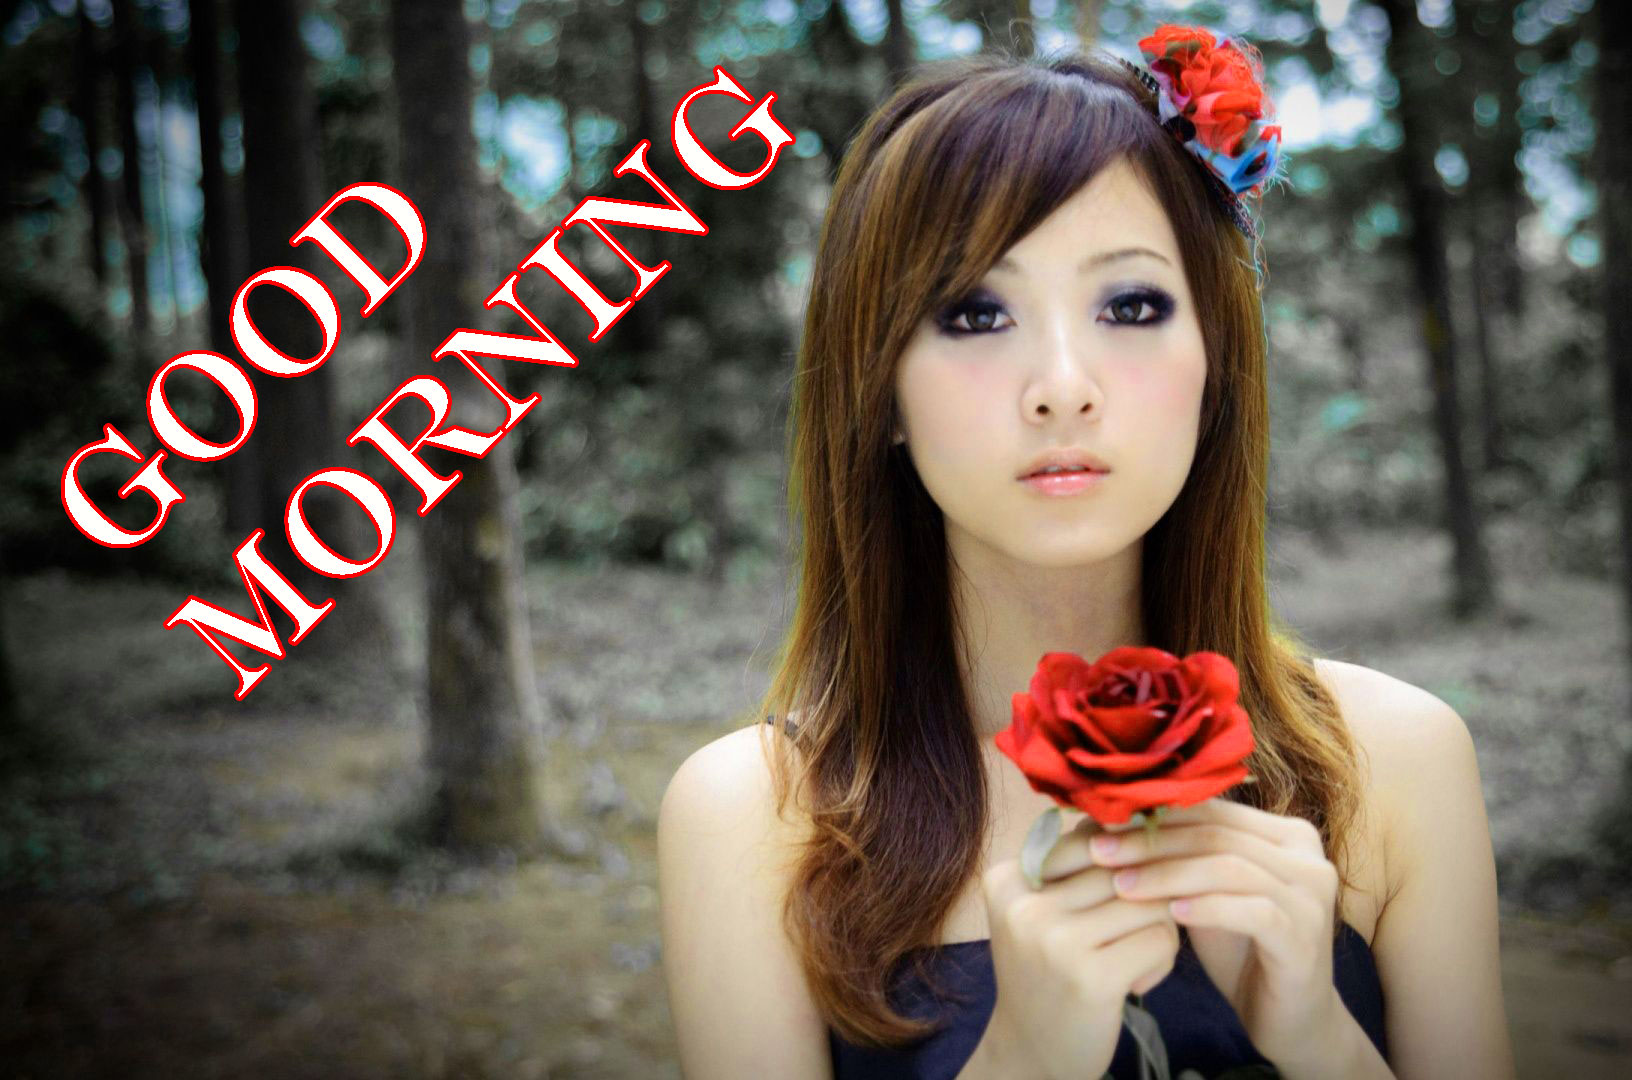 GOOD MORNING WITH BEAUTIFUL DESI CUTE STYLISH IMAGES PHOTO PICS FREE DOWNLOAD